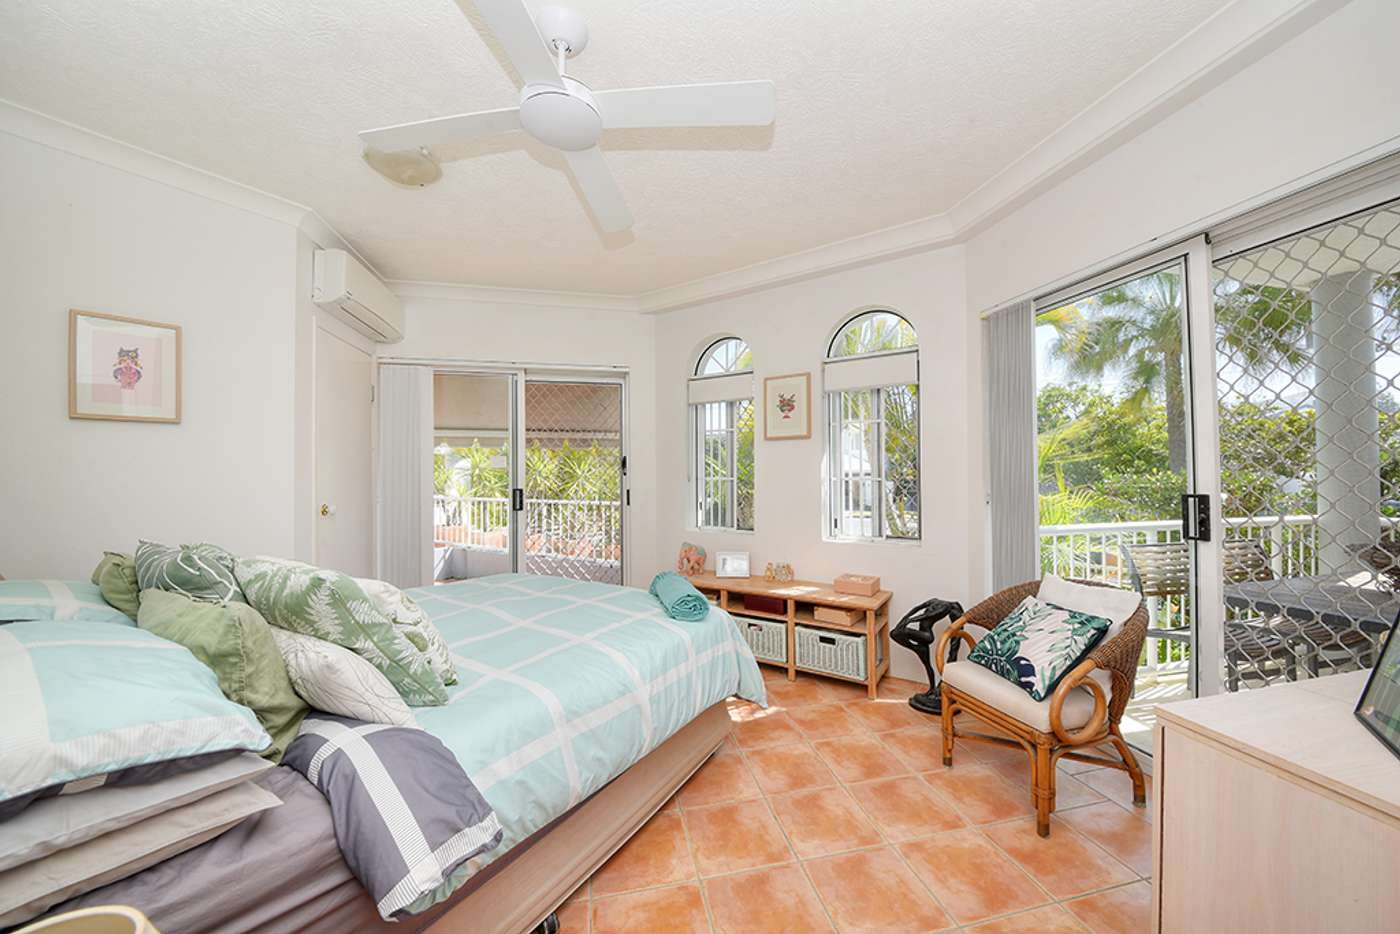 Sixth view of Homely apartment listing, 1/12-14 Venice Street, Mermaid Beach QLD 4218